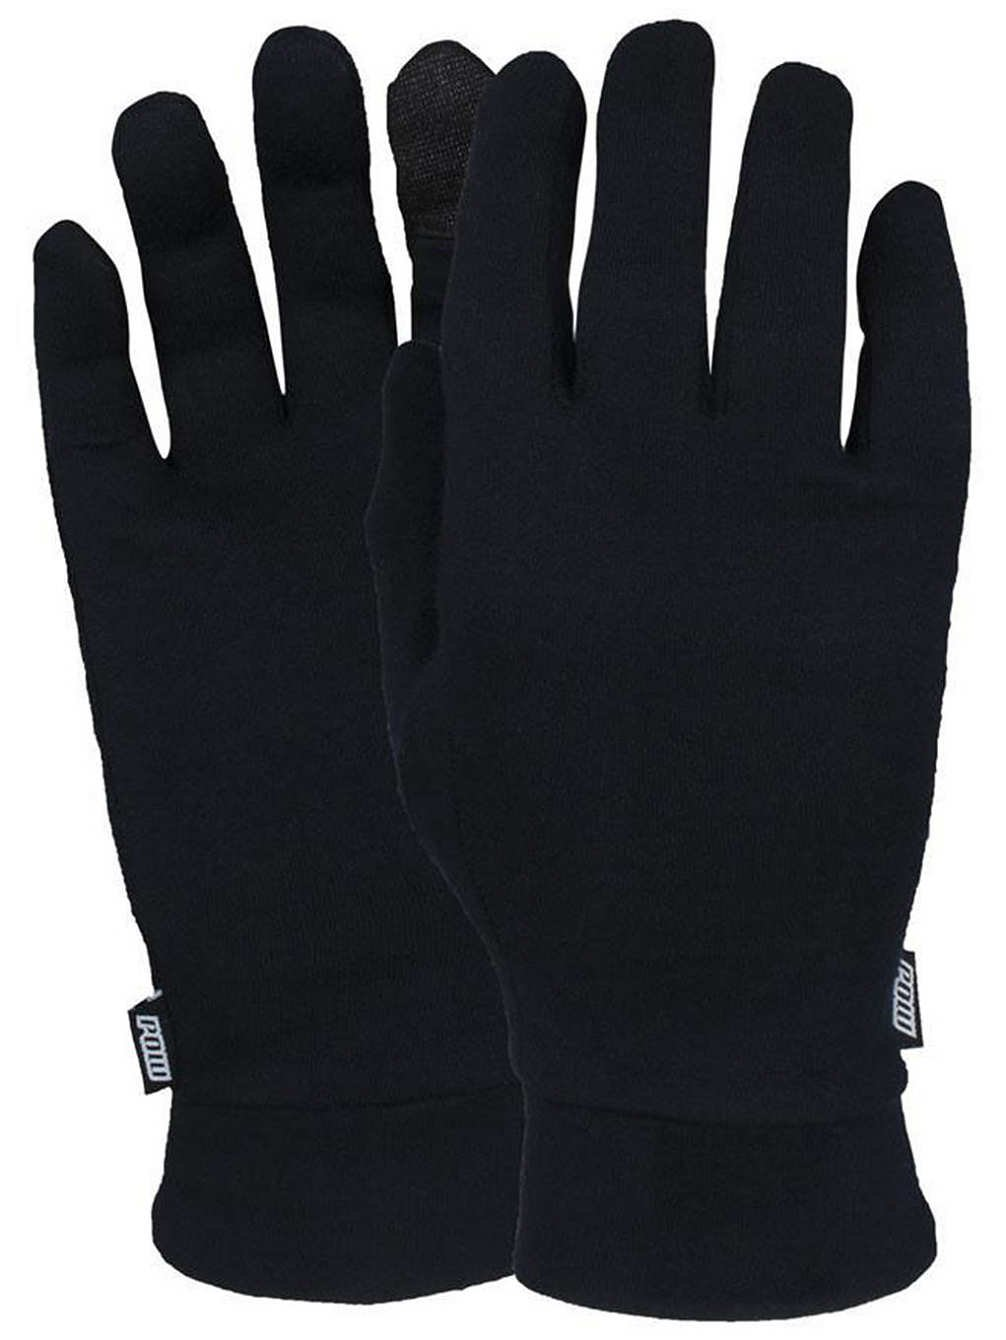 Pow Merino Liner Glove - Black Medium